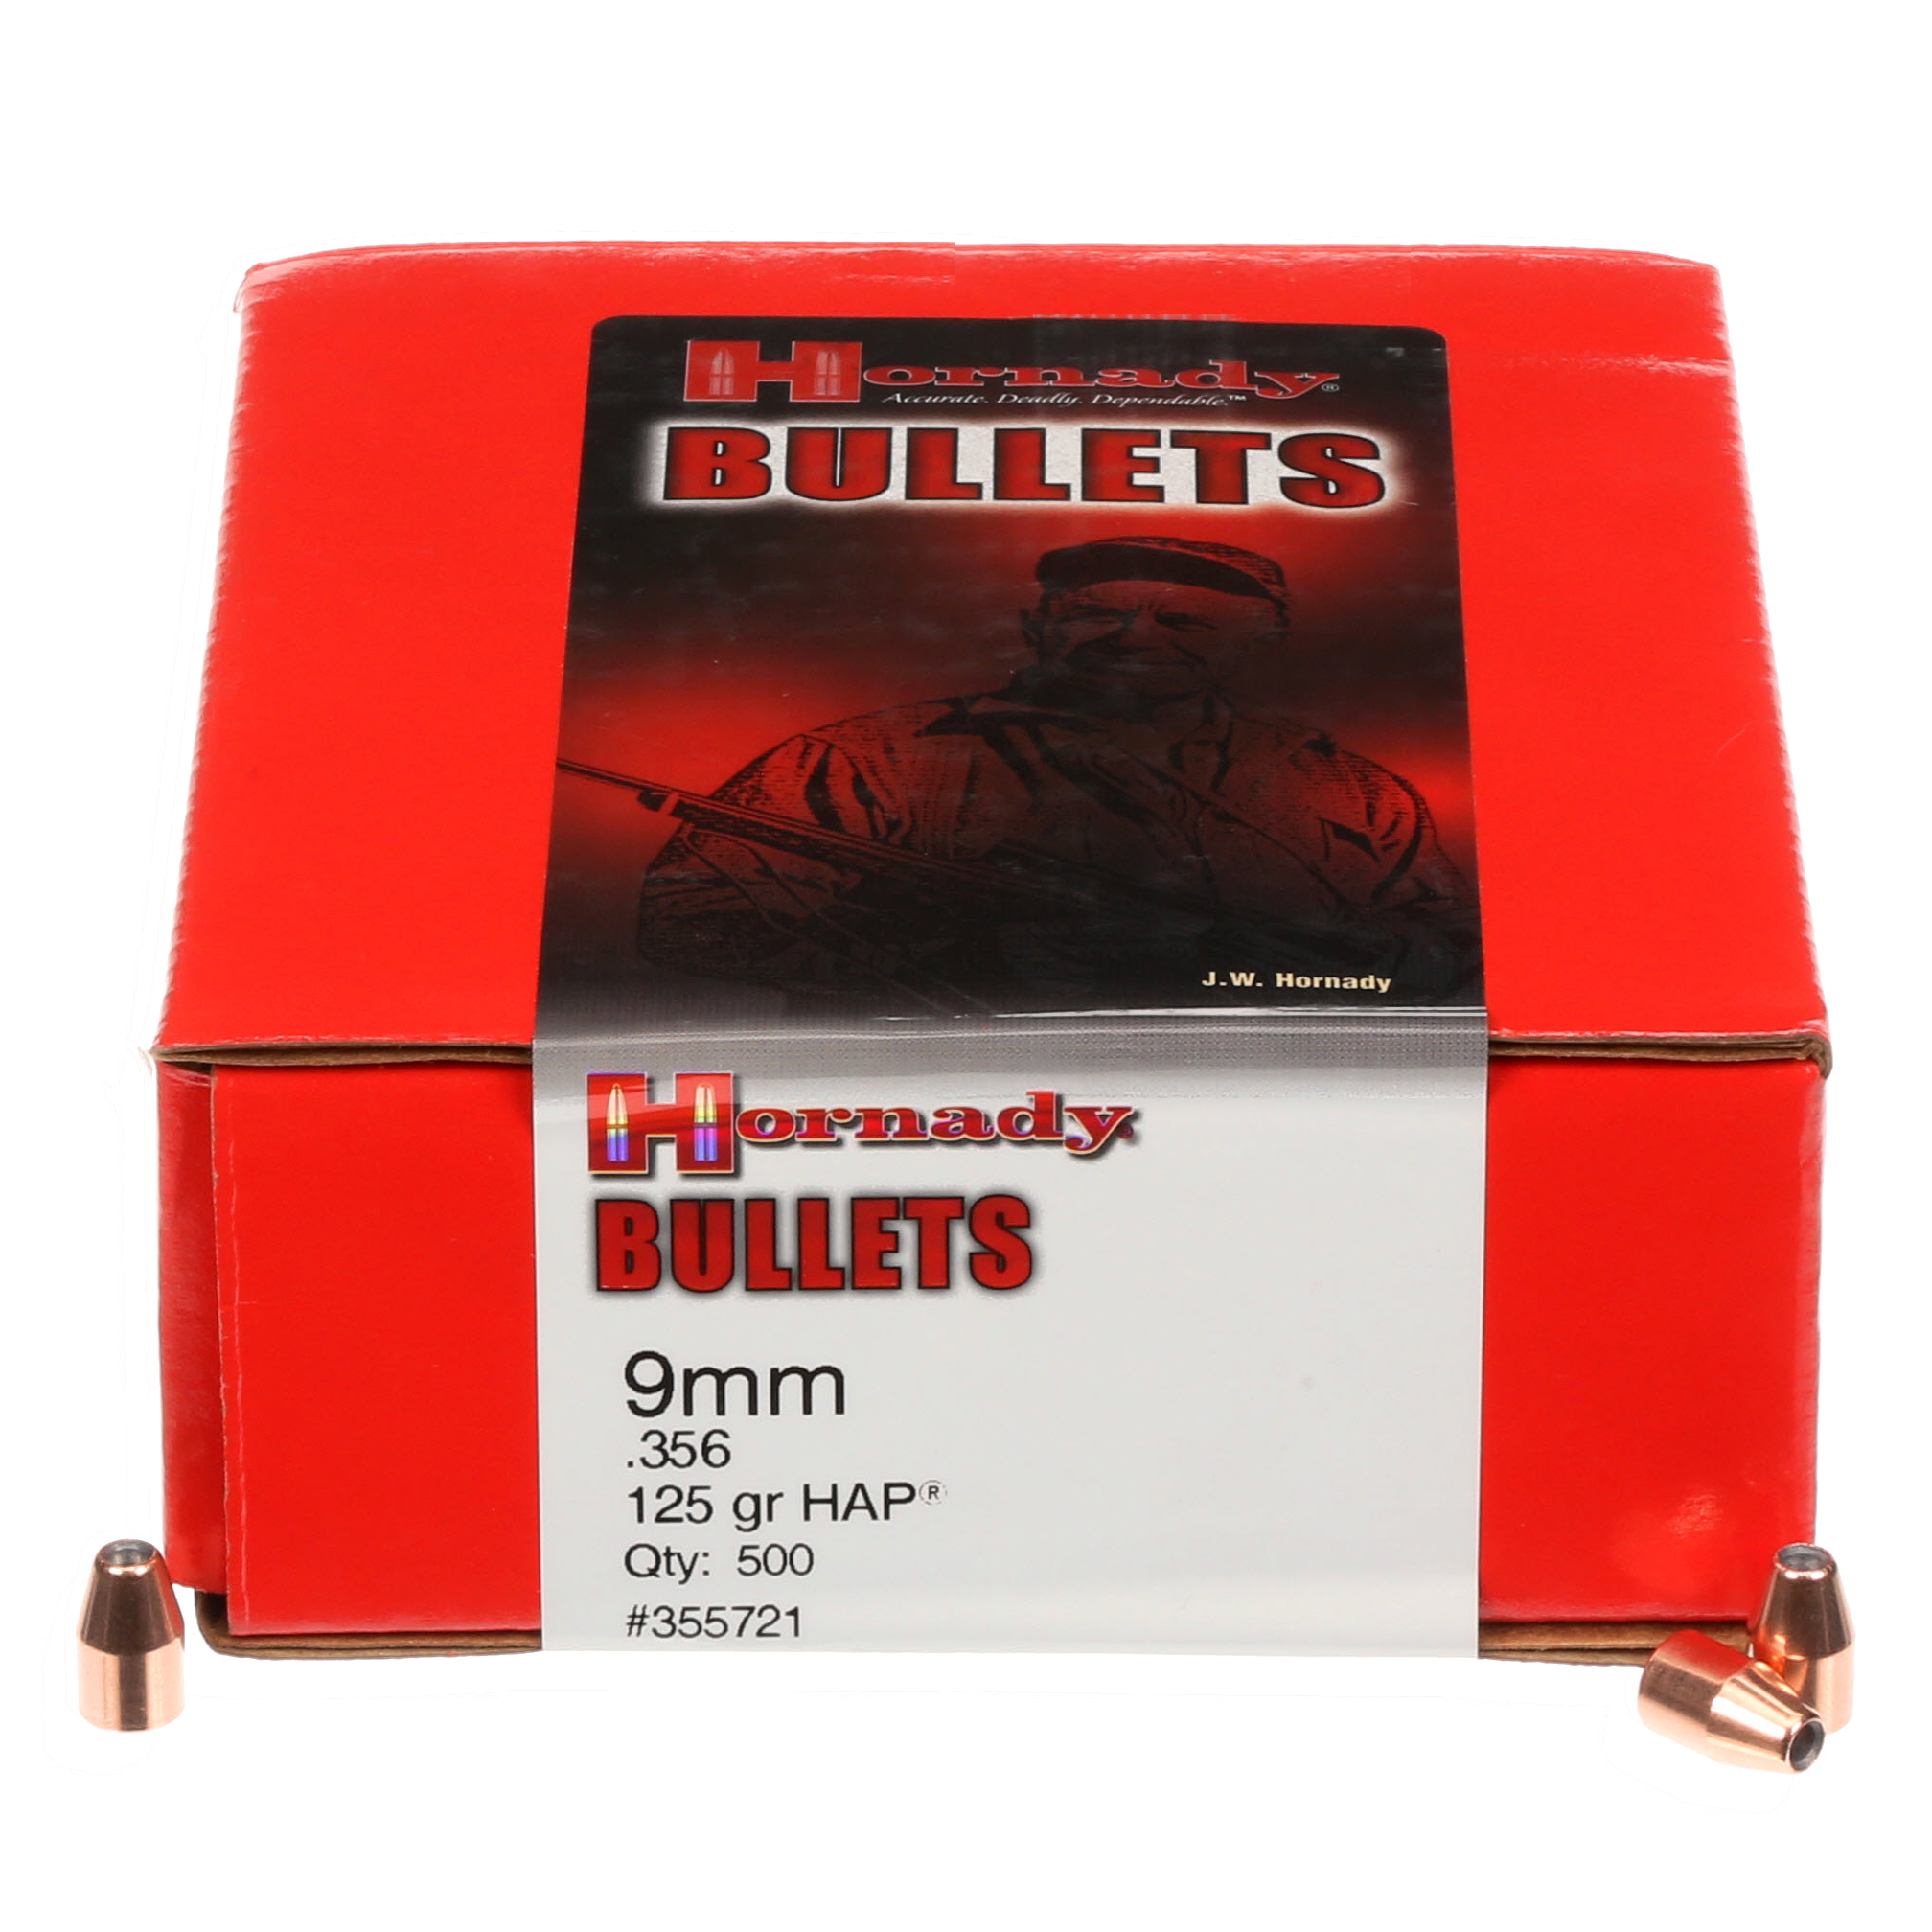 Murdoch's – Hornady - 9mm  356 125 Grain HAP Box of 500 Bullets